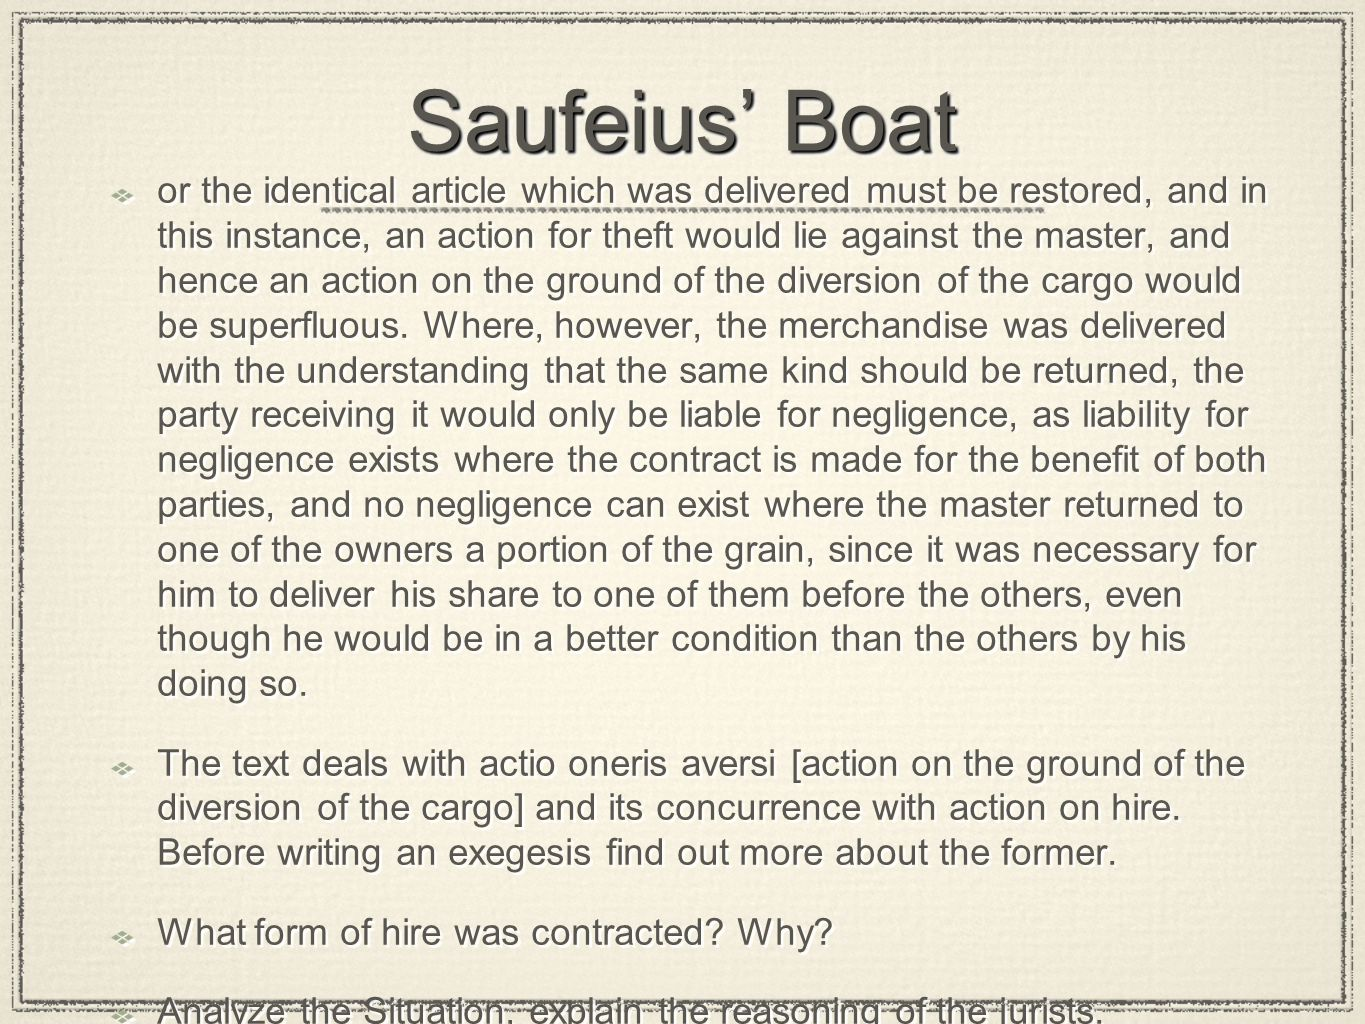 Saufeius' Boat or the identical article which was delivered must be restored, and in this instance, an action for theft would lie against the master,